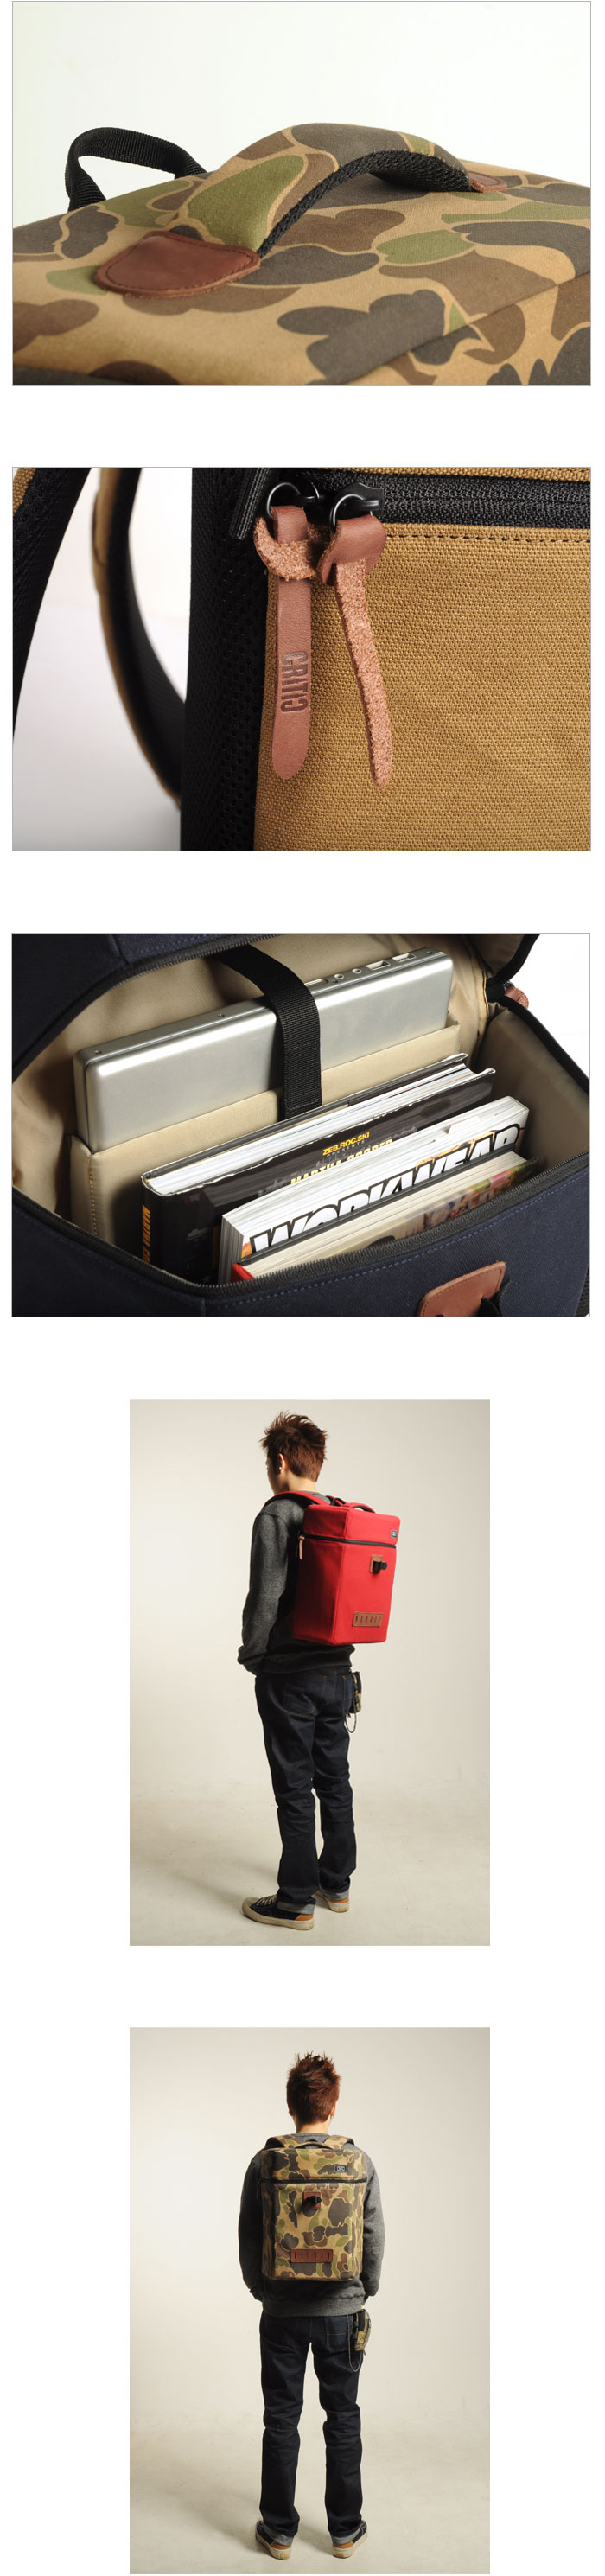 [CRITIC] 2012 Backpack line up ~! 발매 소식!